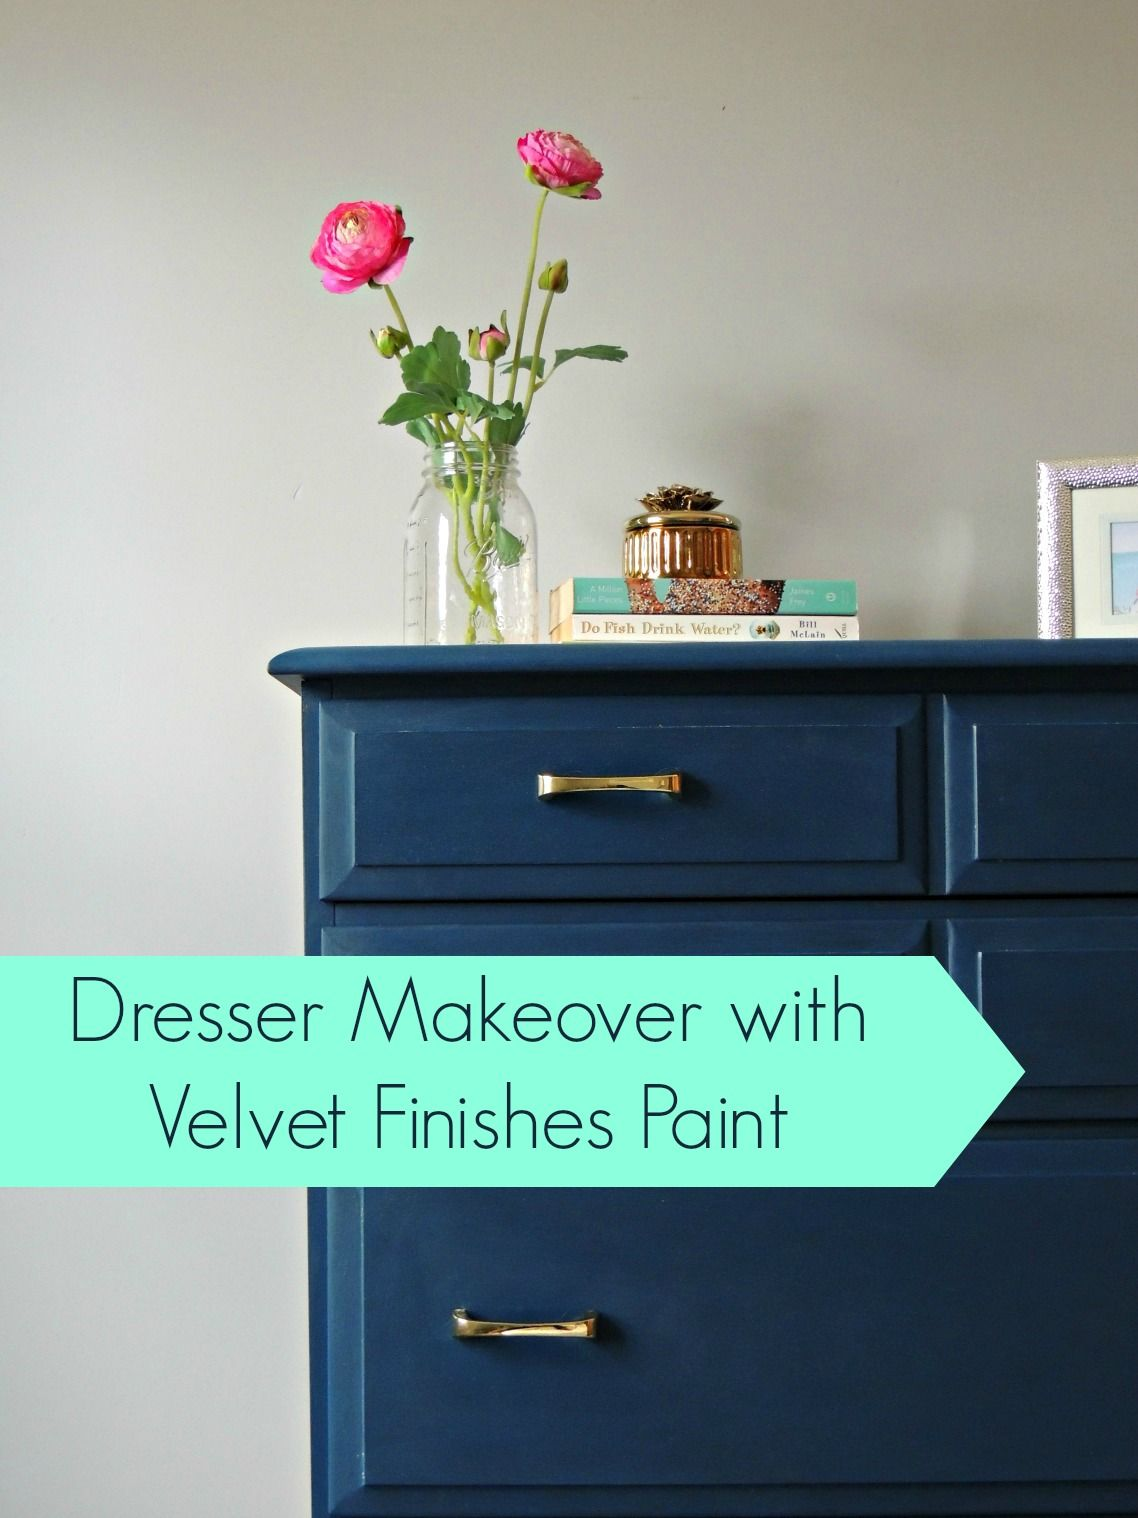 Painting an old dresser using velvet finishes paint | Wife in Progress Navy makes a good change to white...